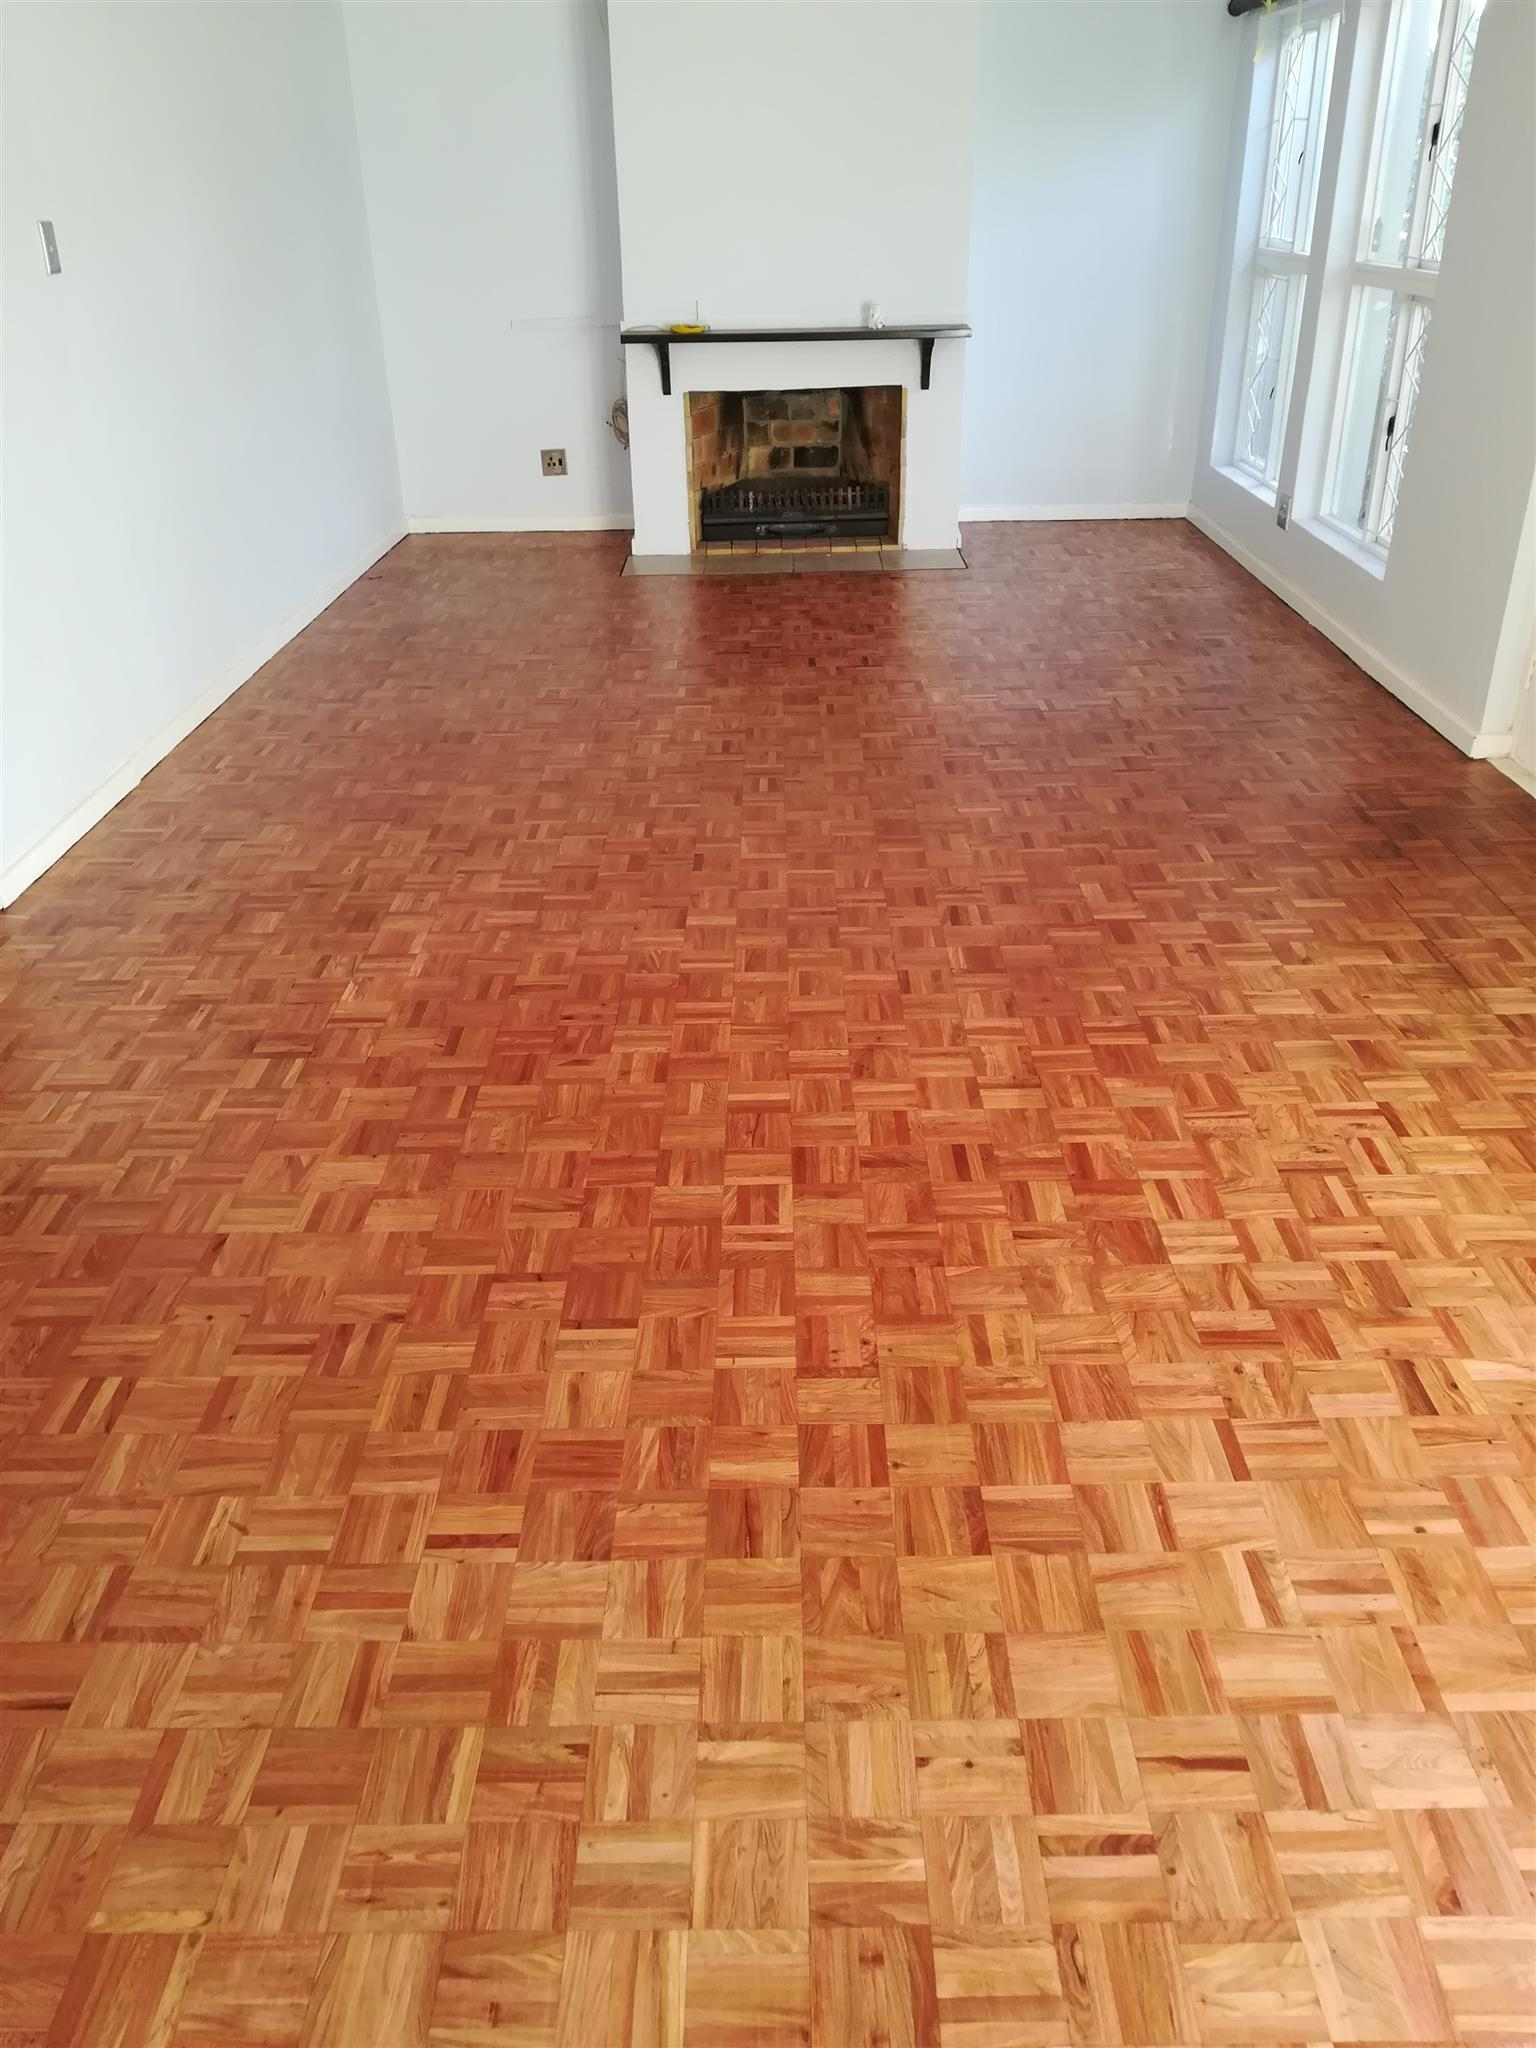 Sanding and sealing of all wooden flooring